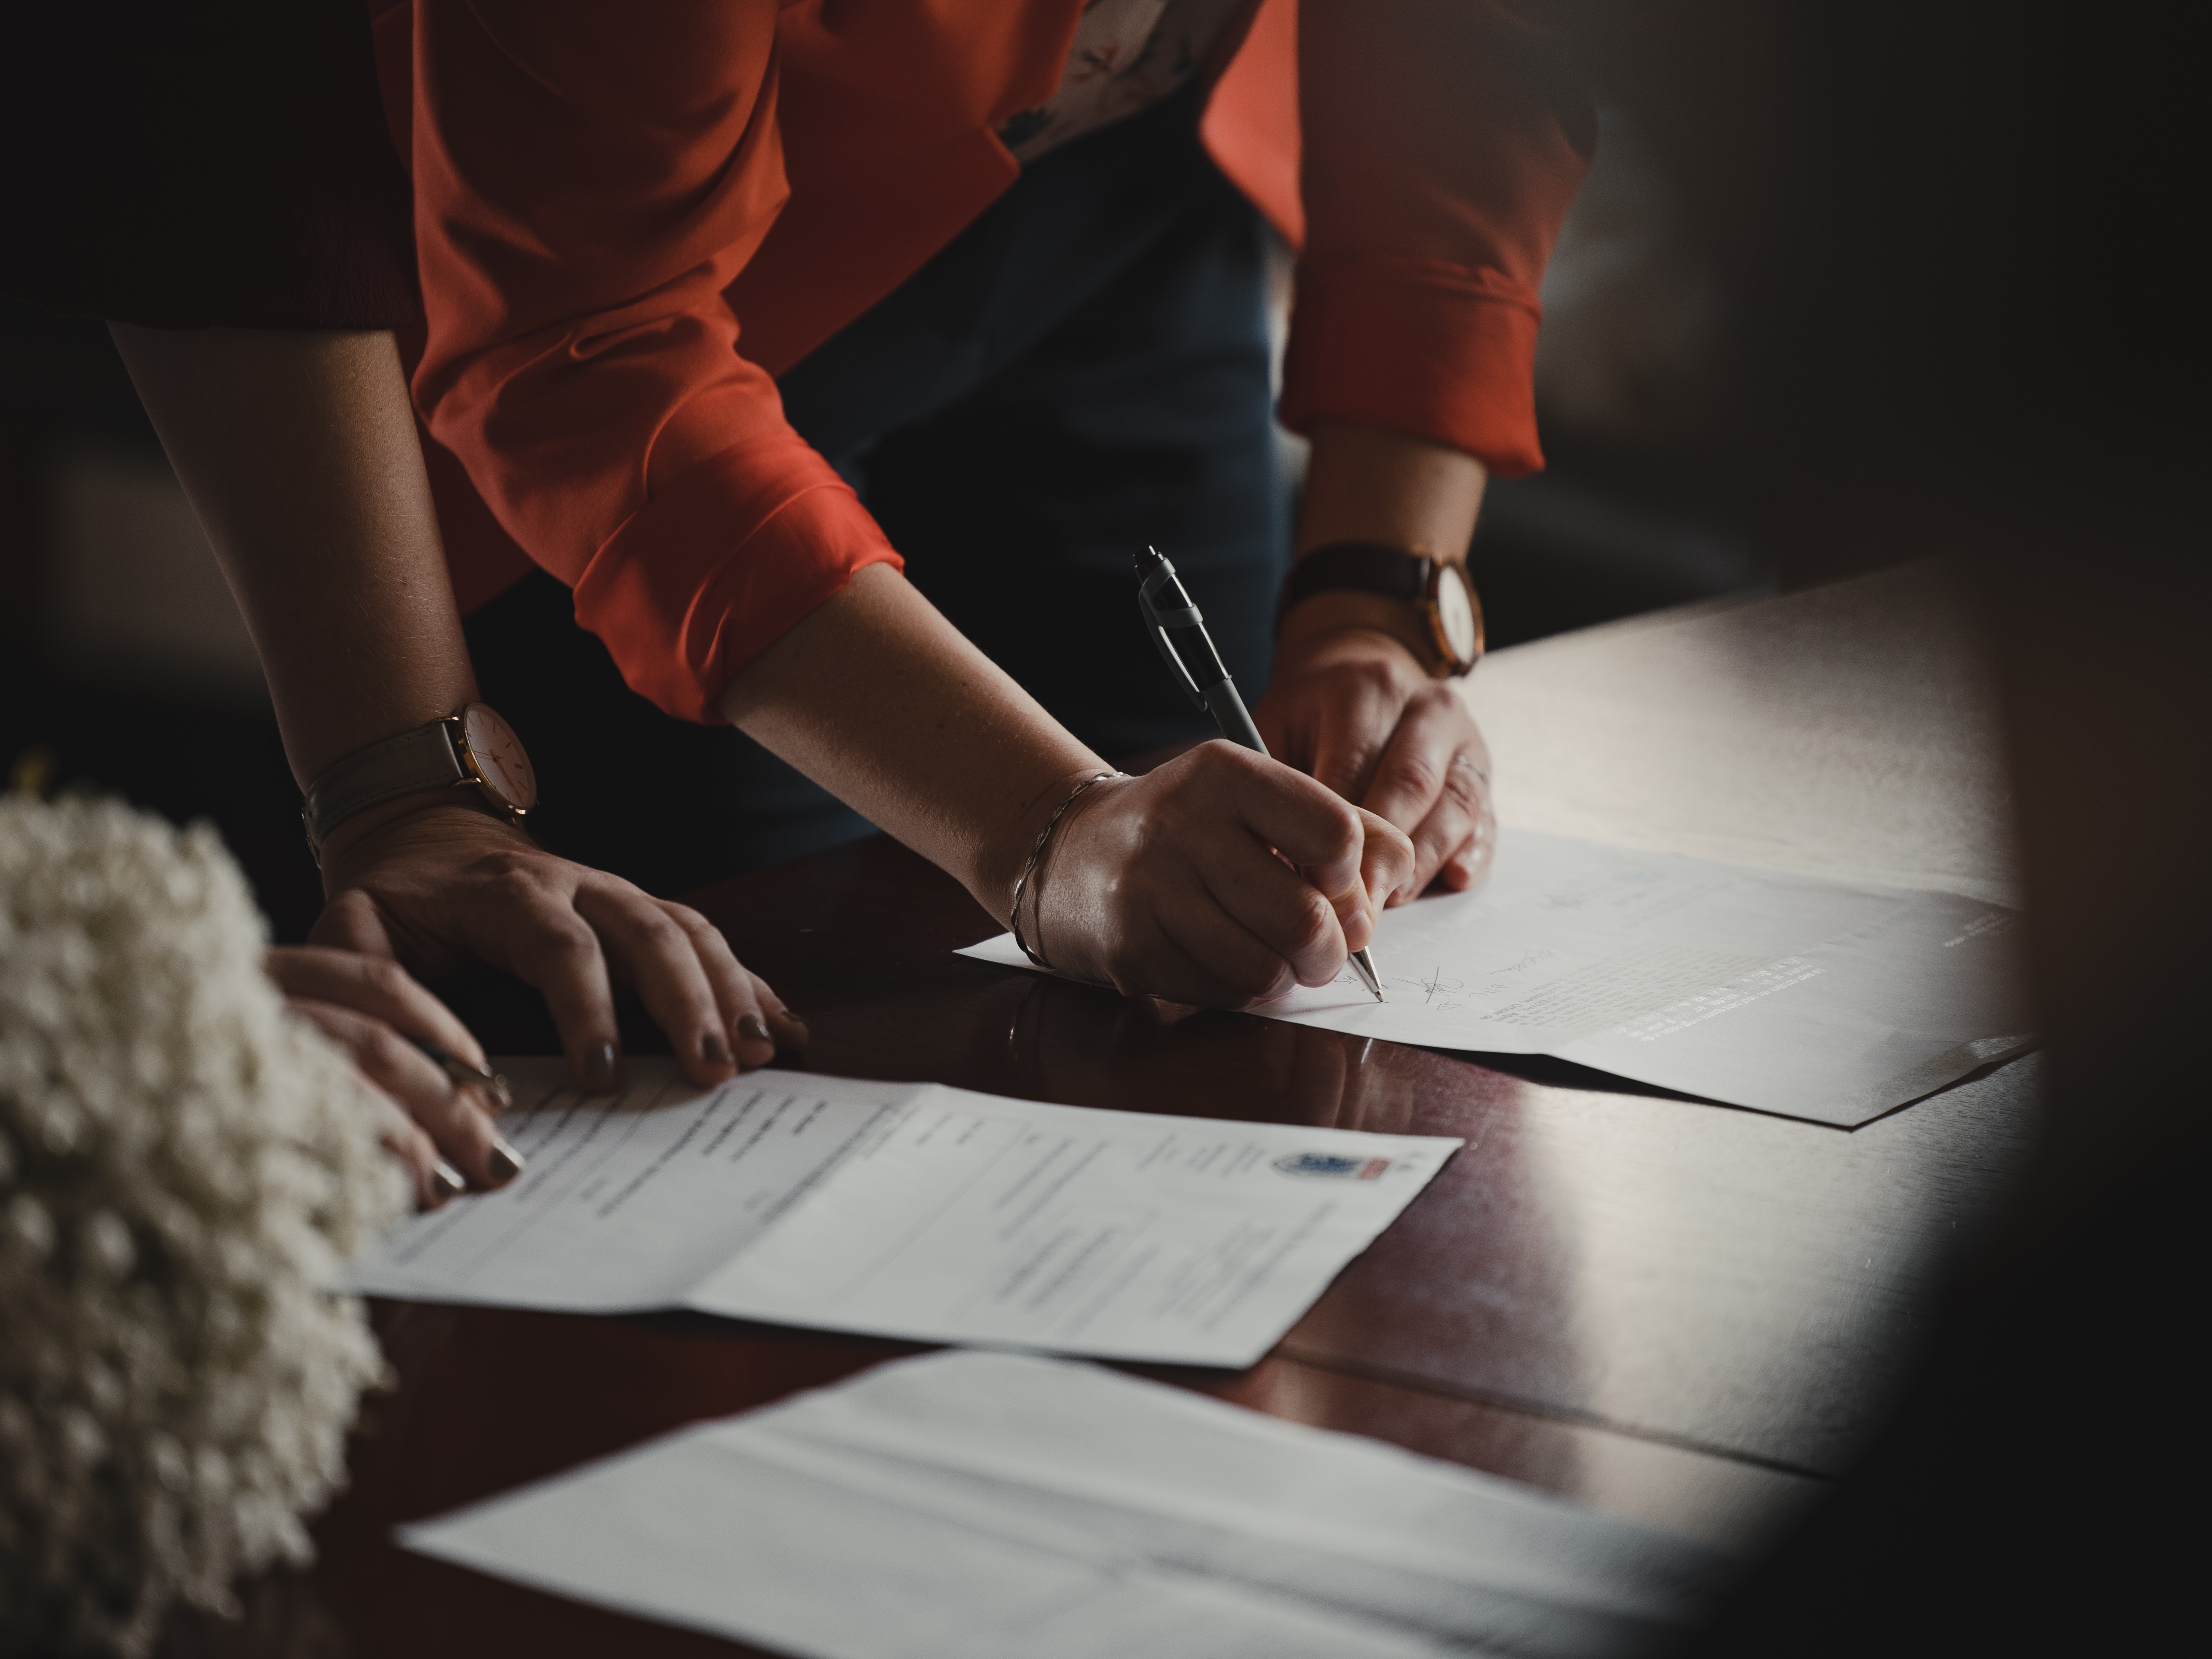 A woman signing a document